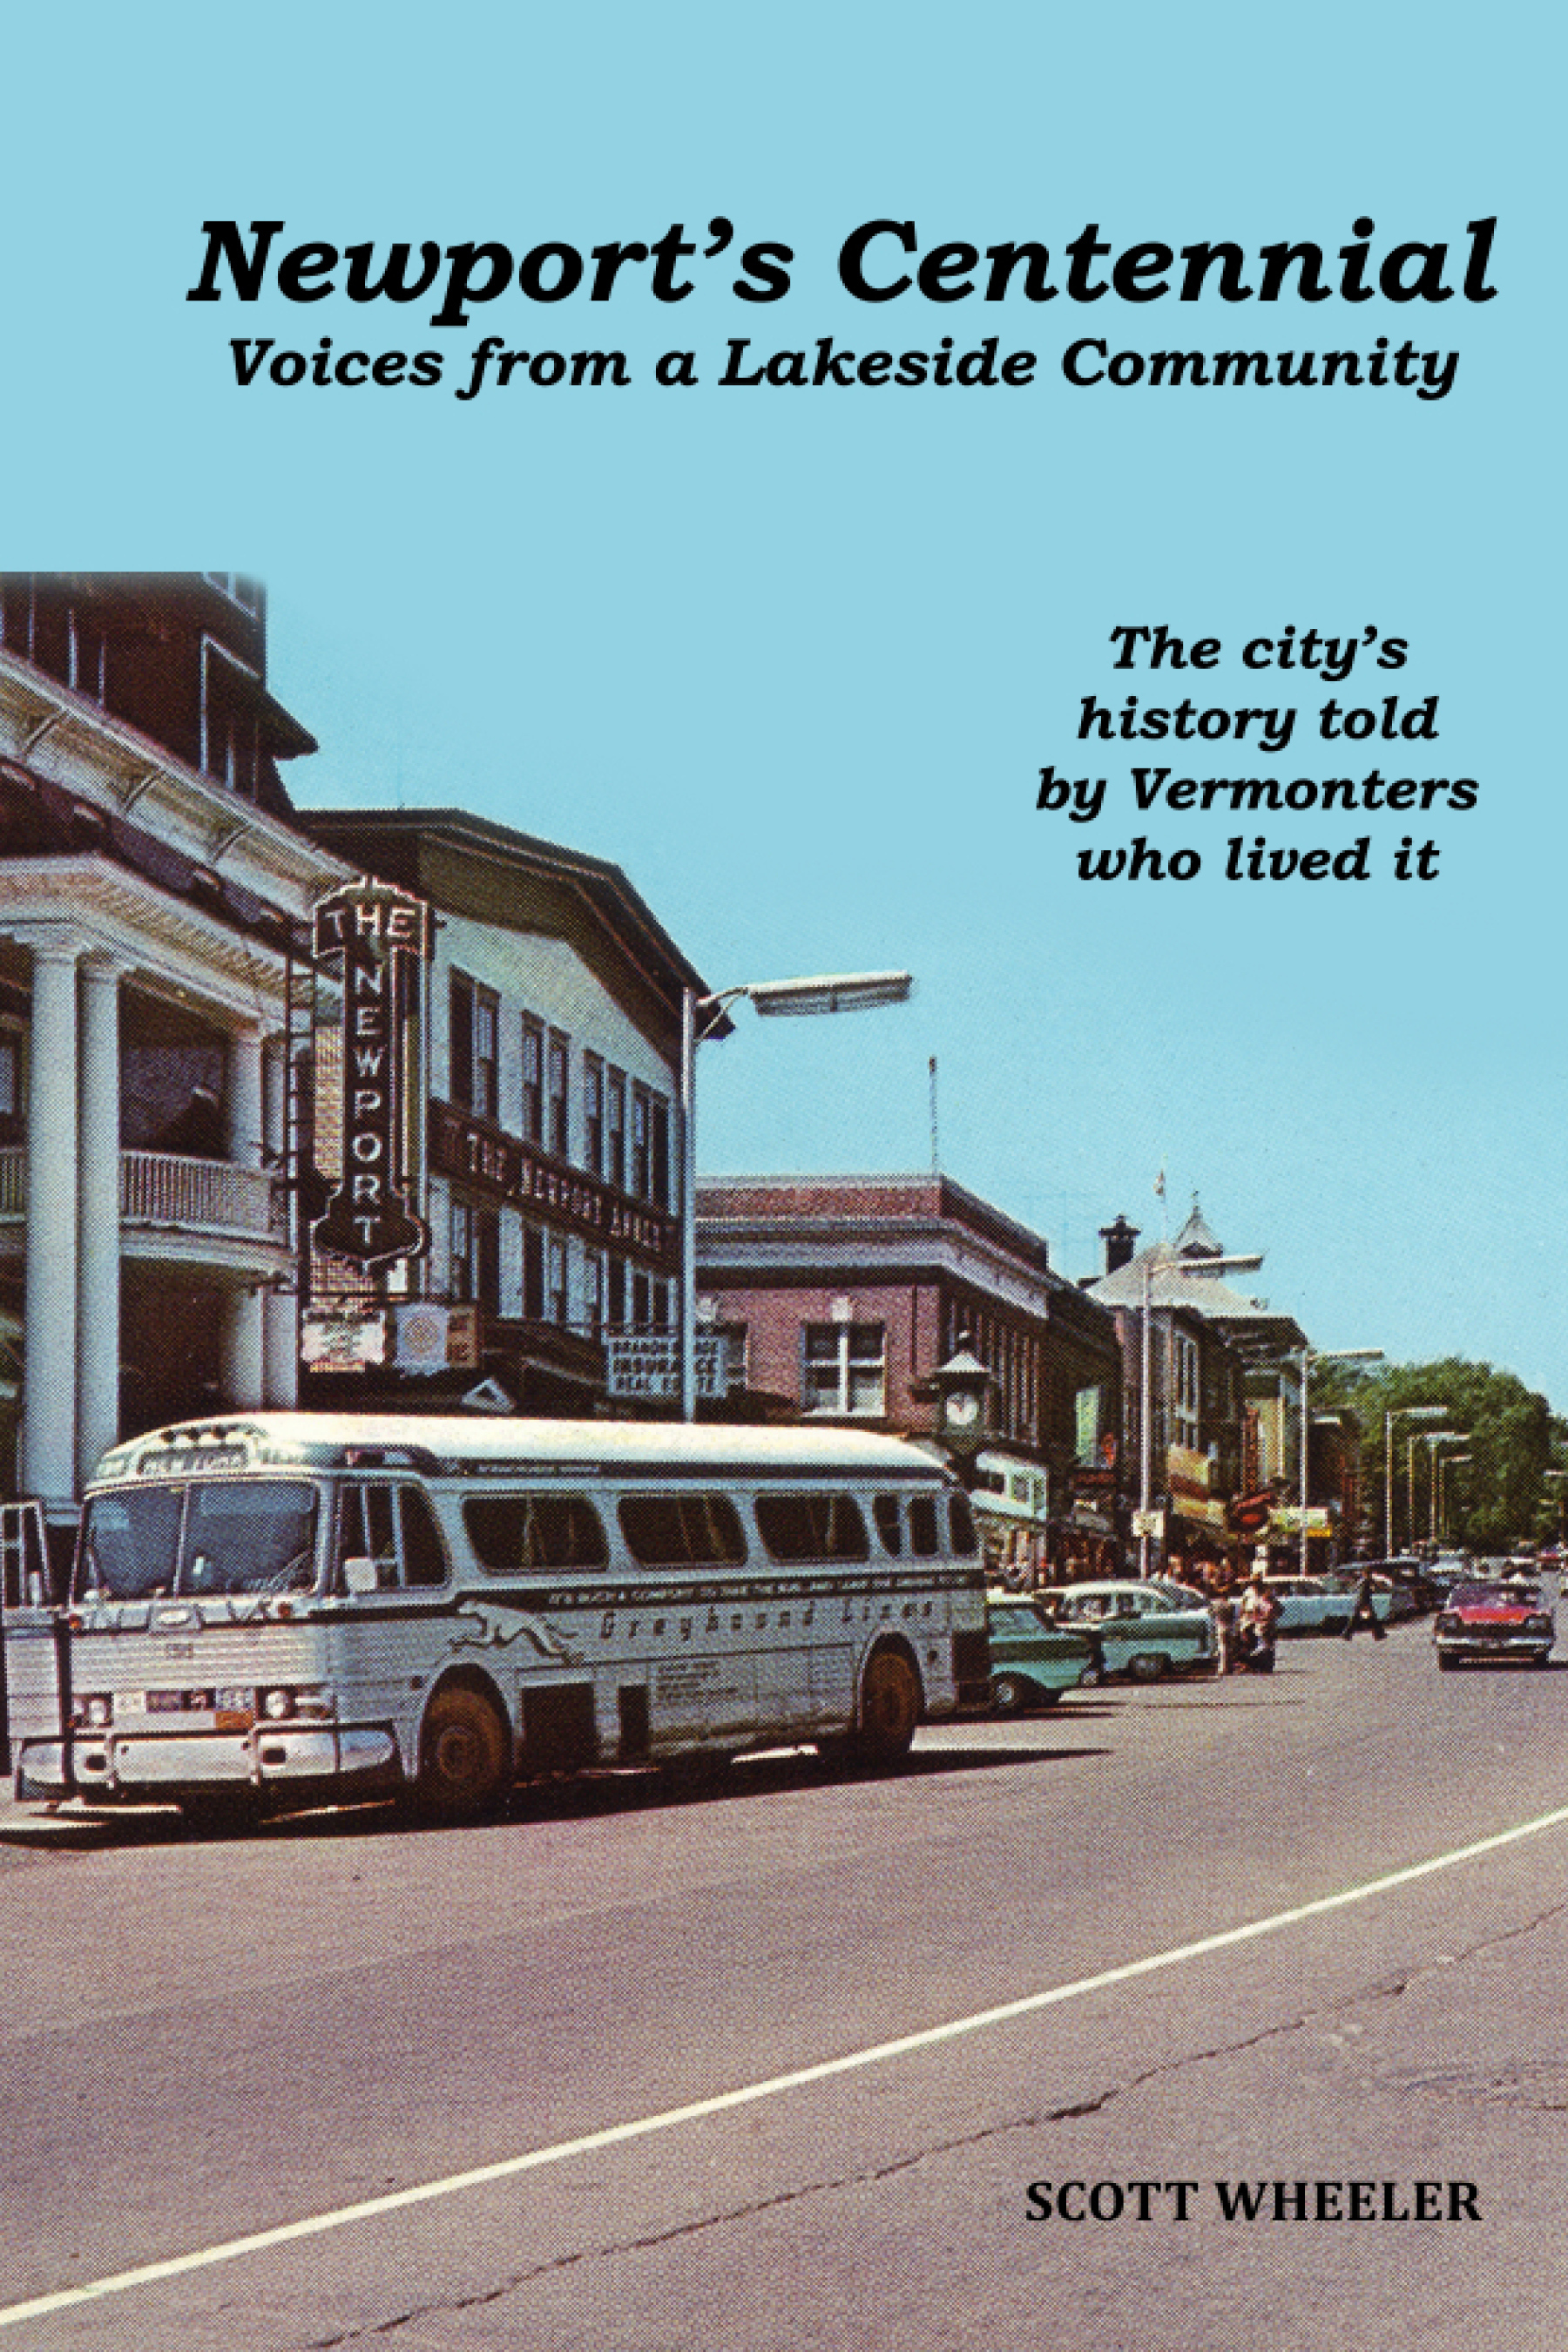 Newport's Centennial: Voices from a Lakeside Community 978-1-5323-7910